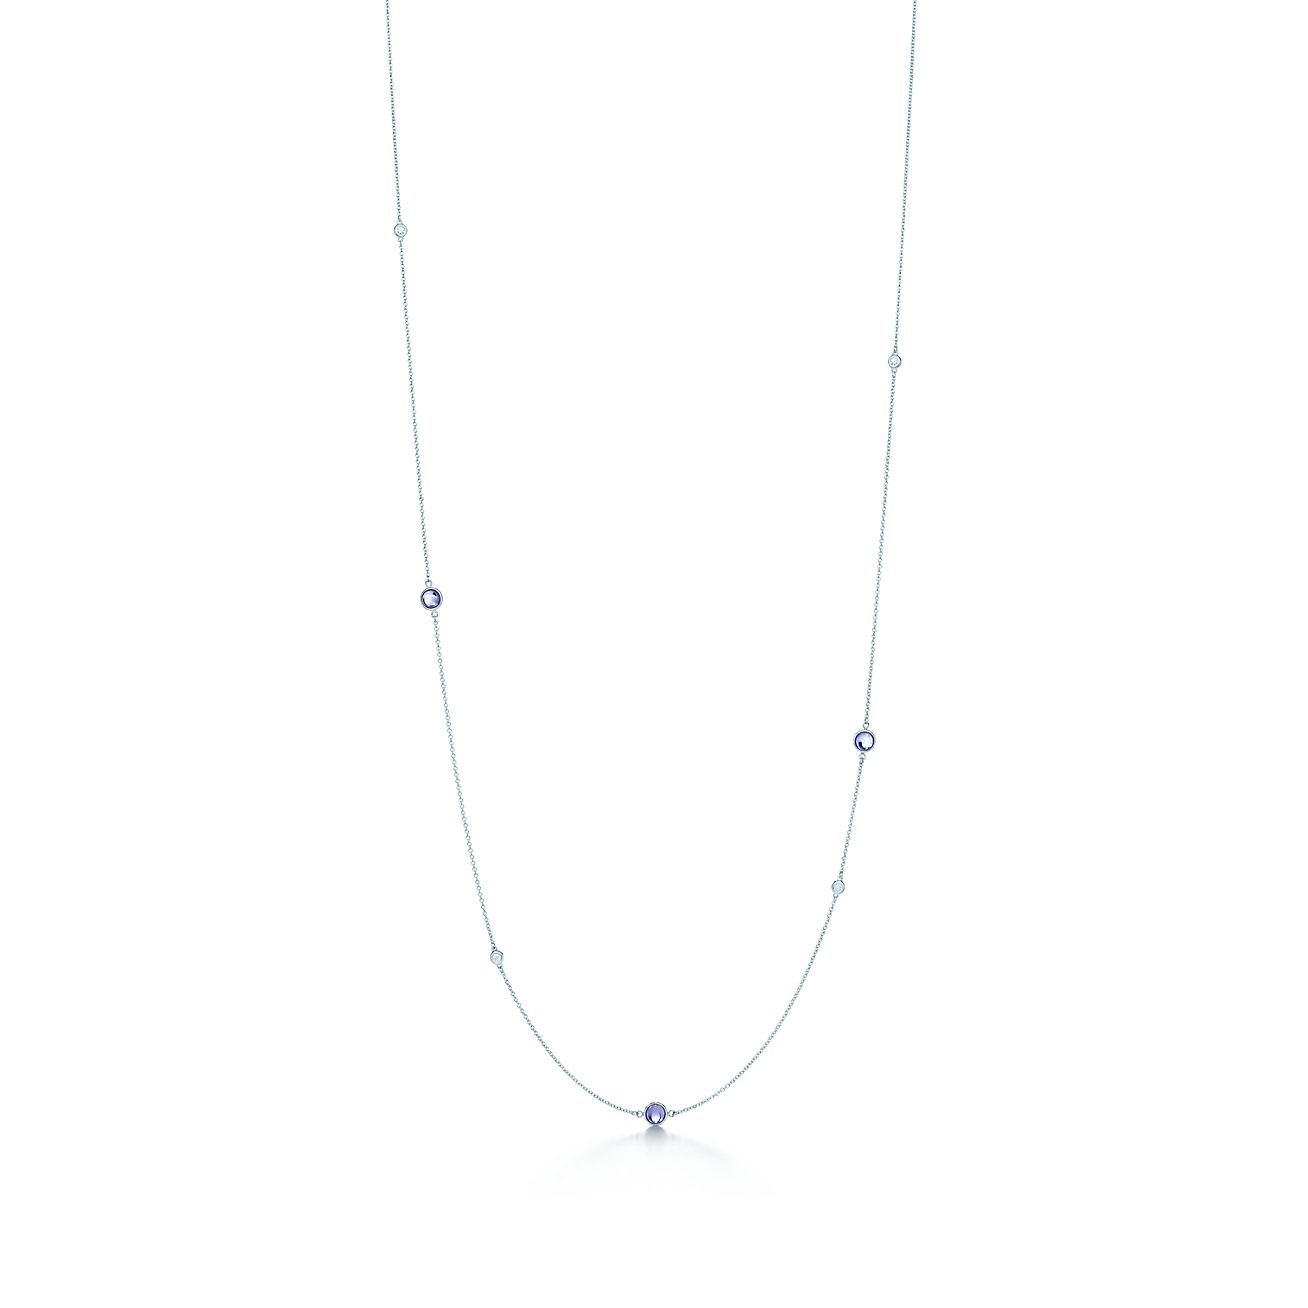 Elsa Peretti Color by the Yard necklace in silver with tanzanite and diamonds Tiffany & Co.